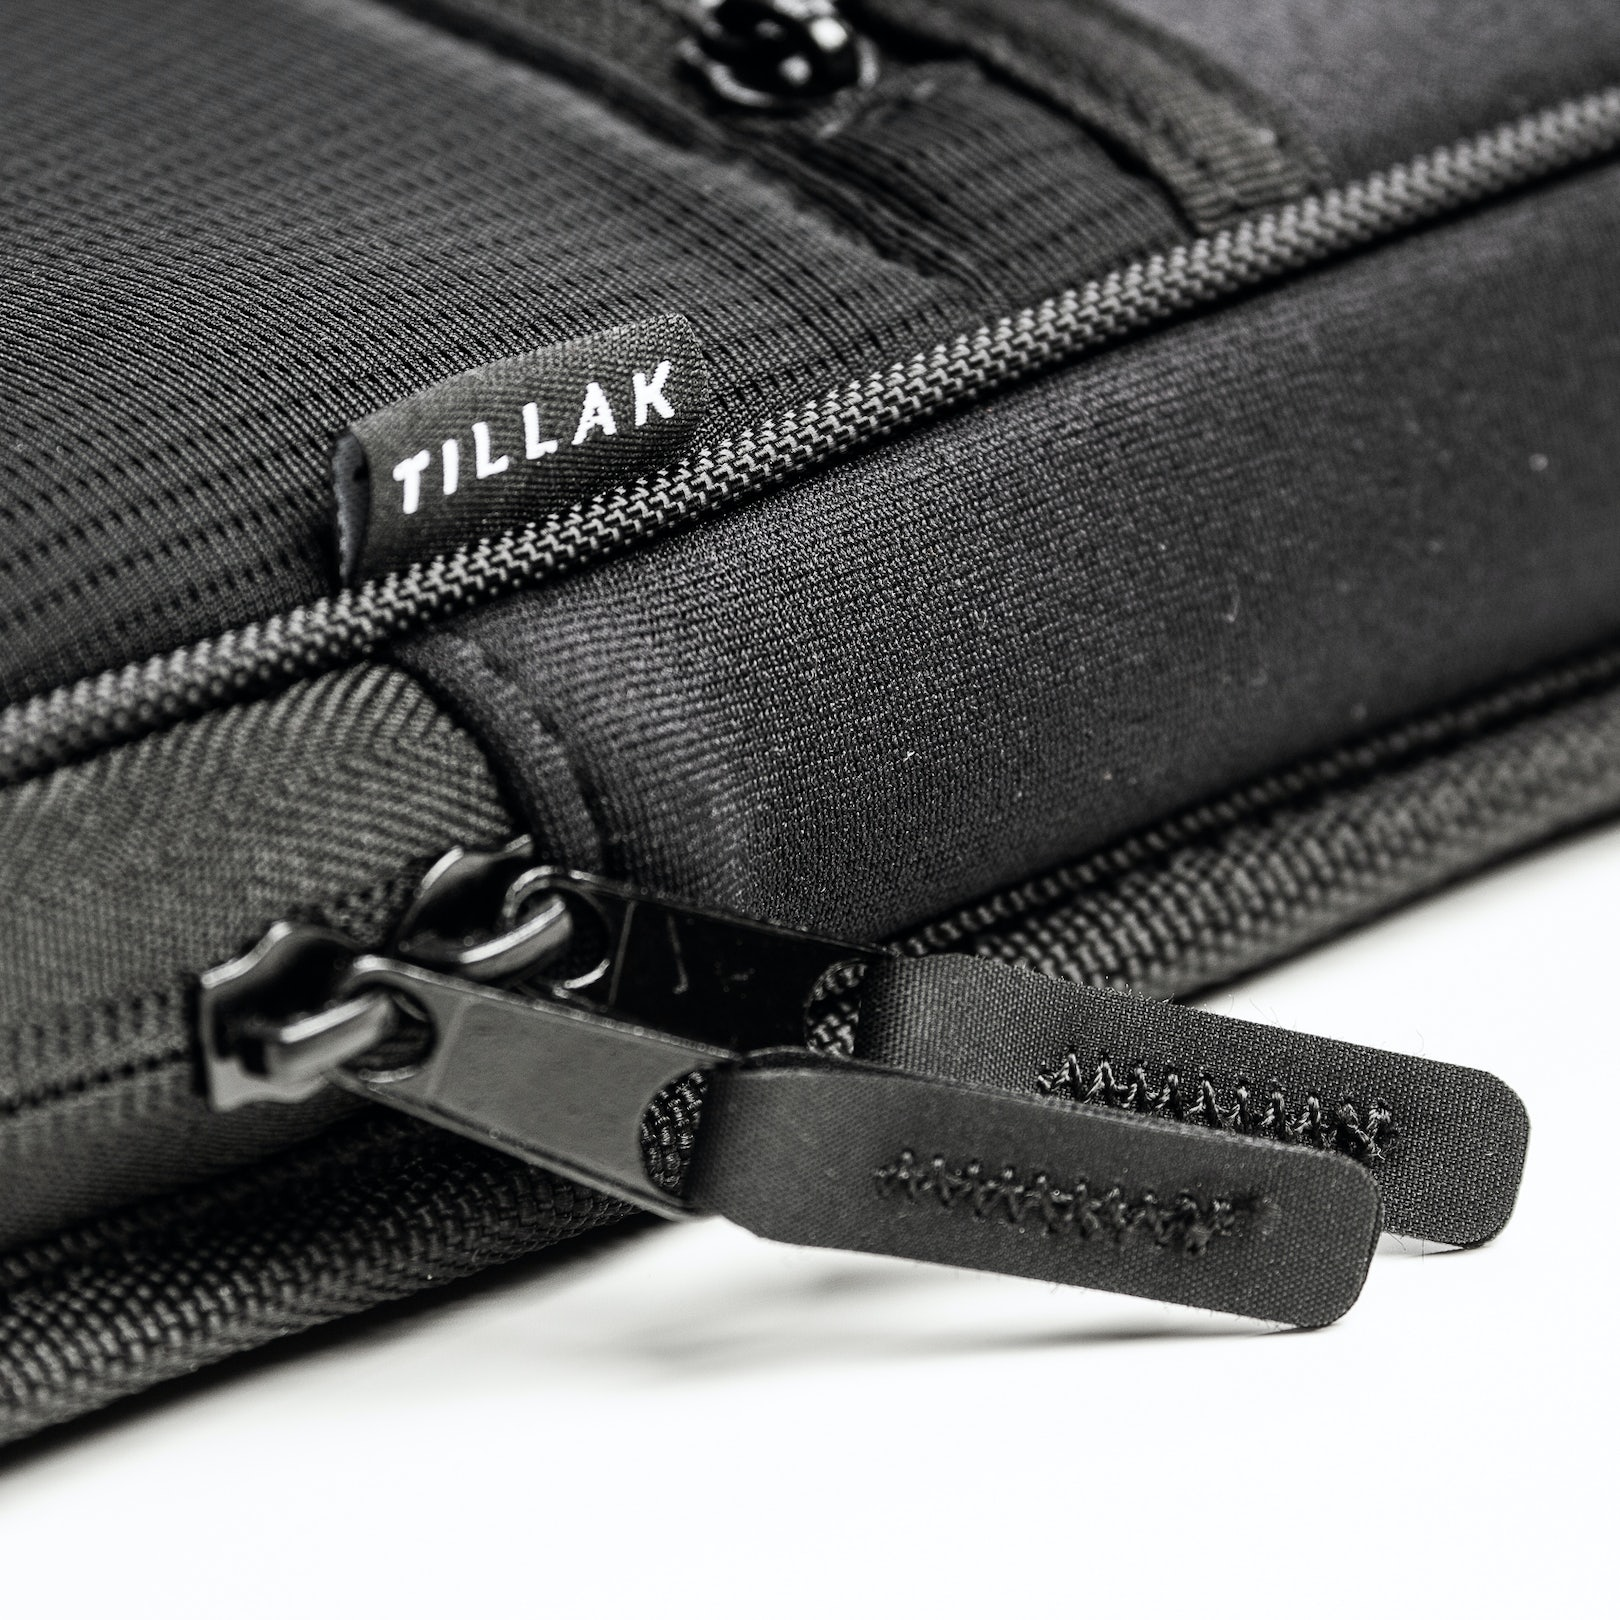 Tillak Siletz Laptop Sleeve